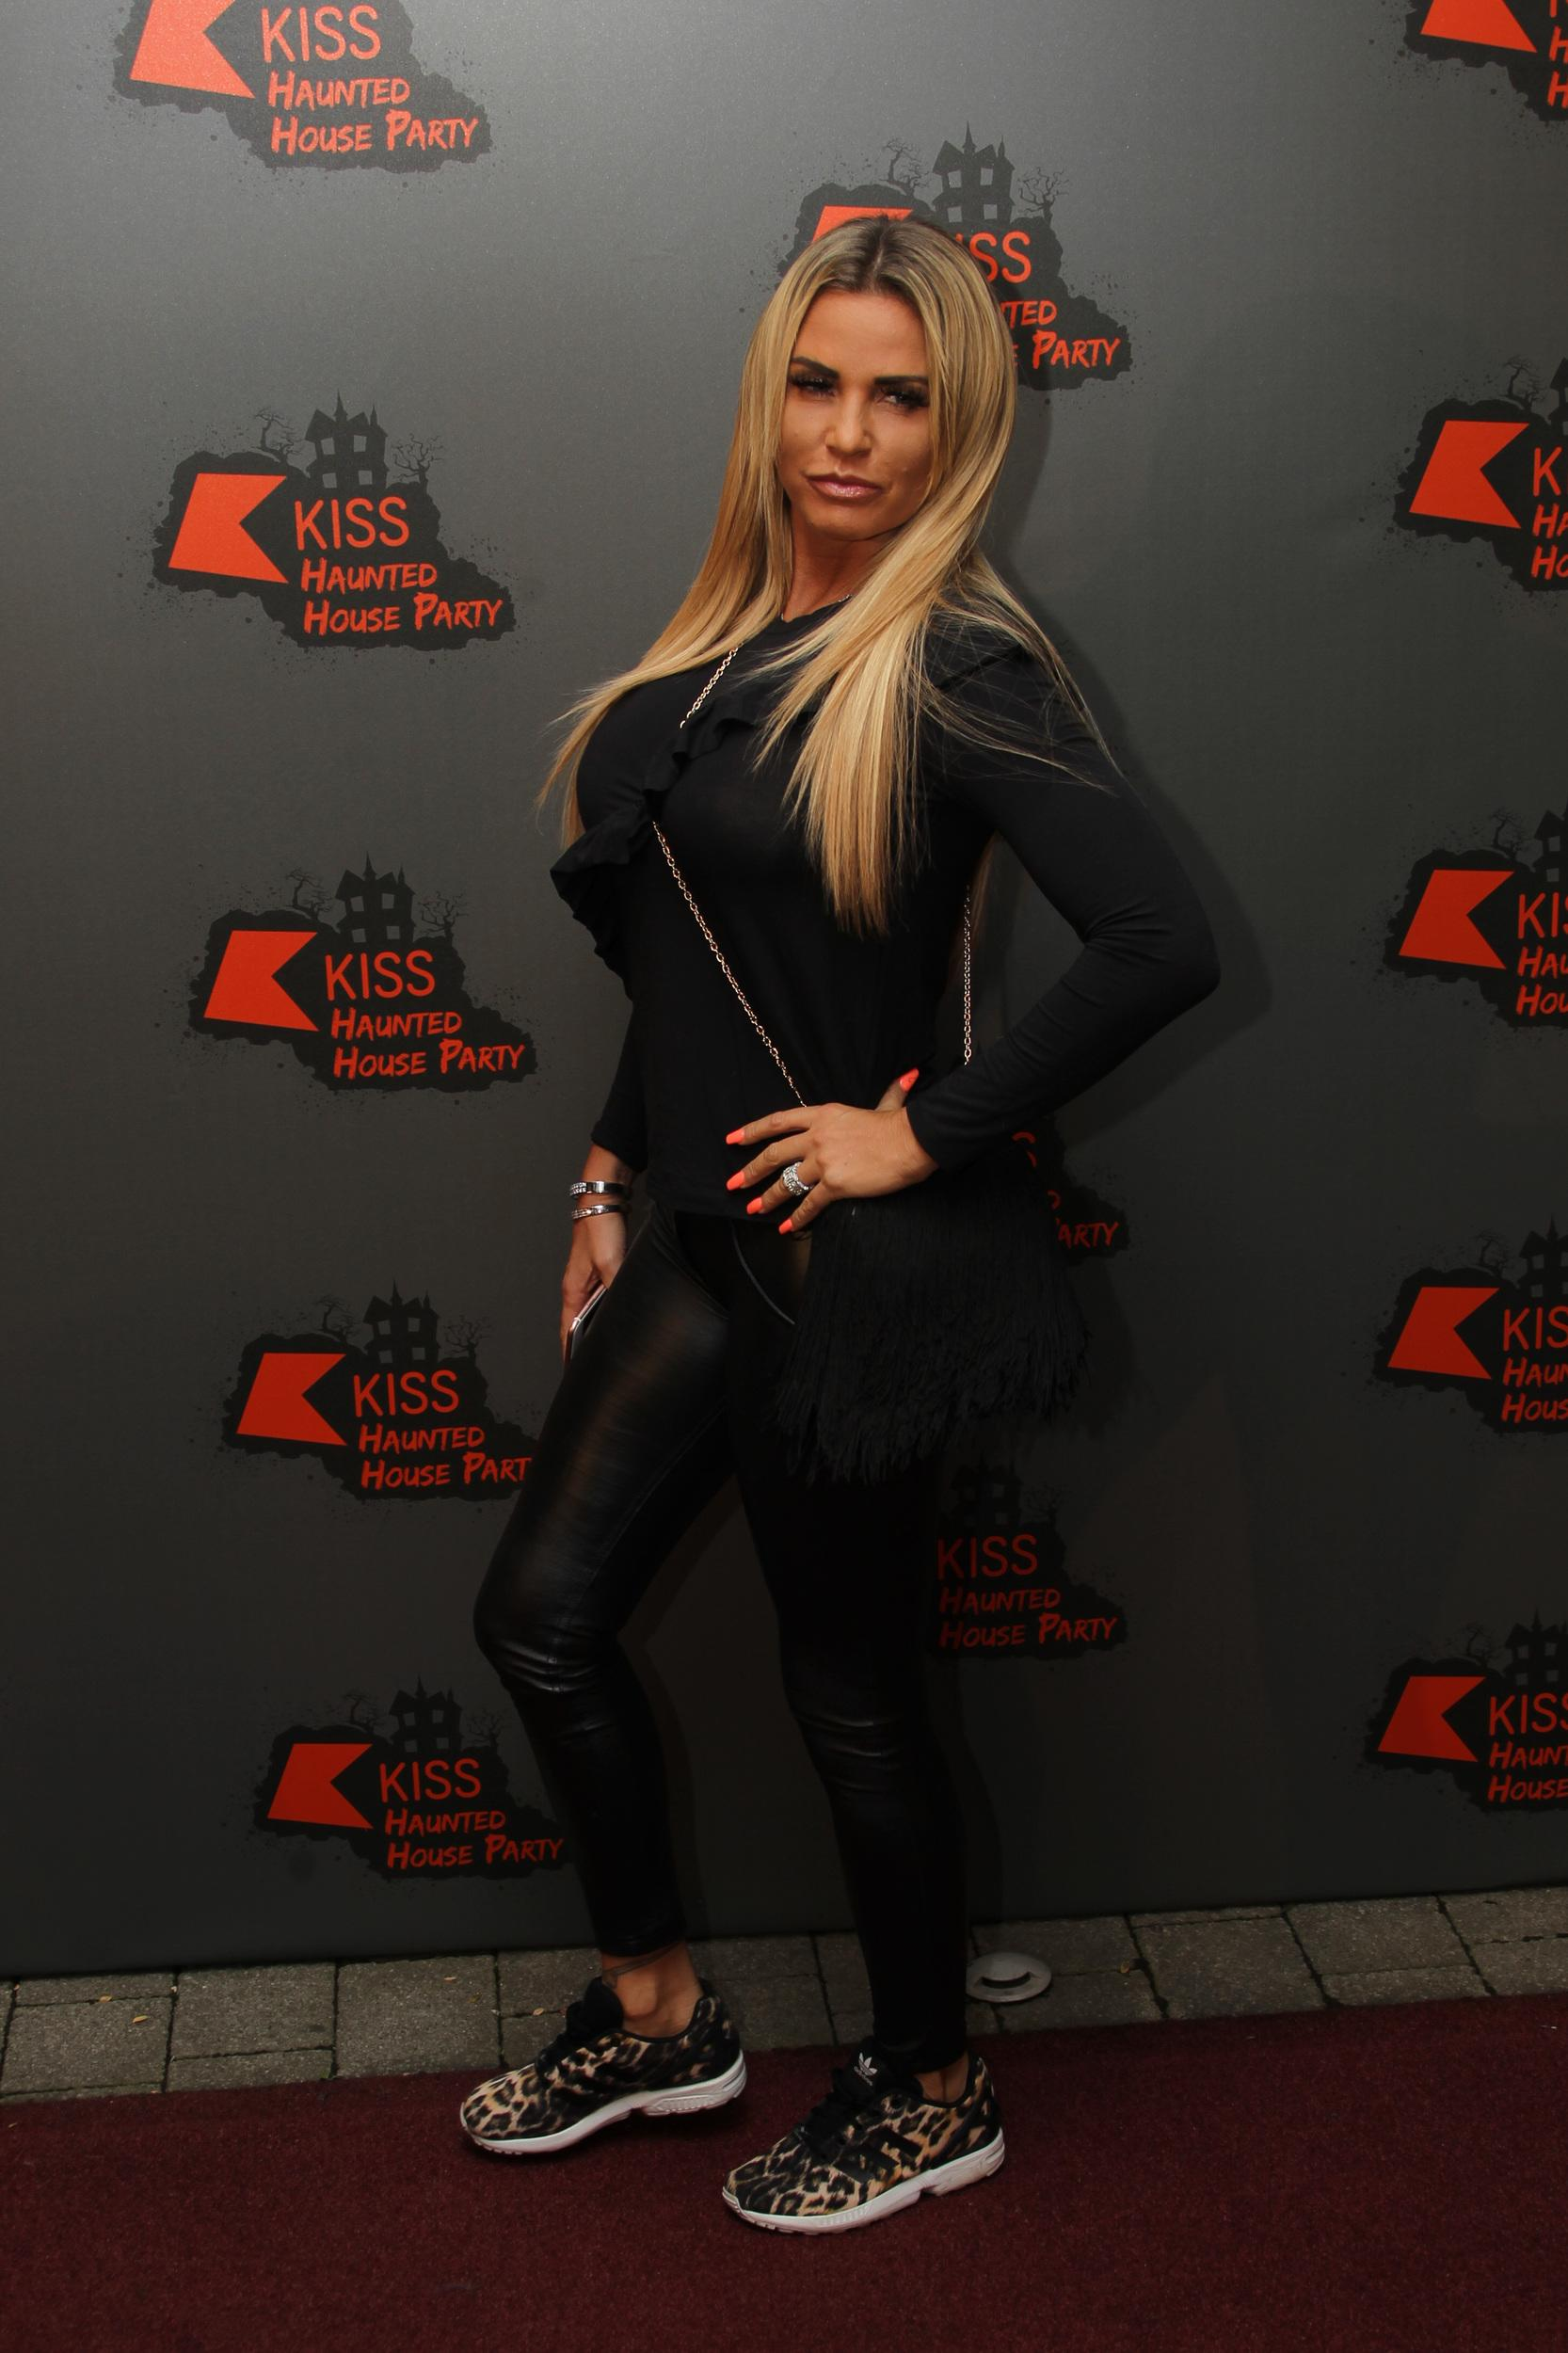 Katie Price arriving on the red carpet at the 2016 KISS Haunted House Party at the Wembley Arena in London. Photo date: Thursday, October 27, 2016. Photo credit should read: Richard Gray/EMPICS Entertainment